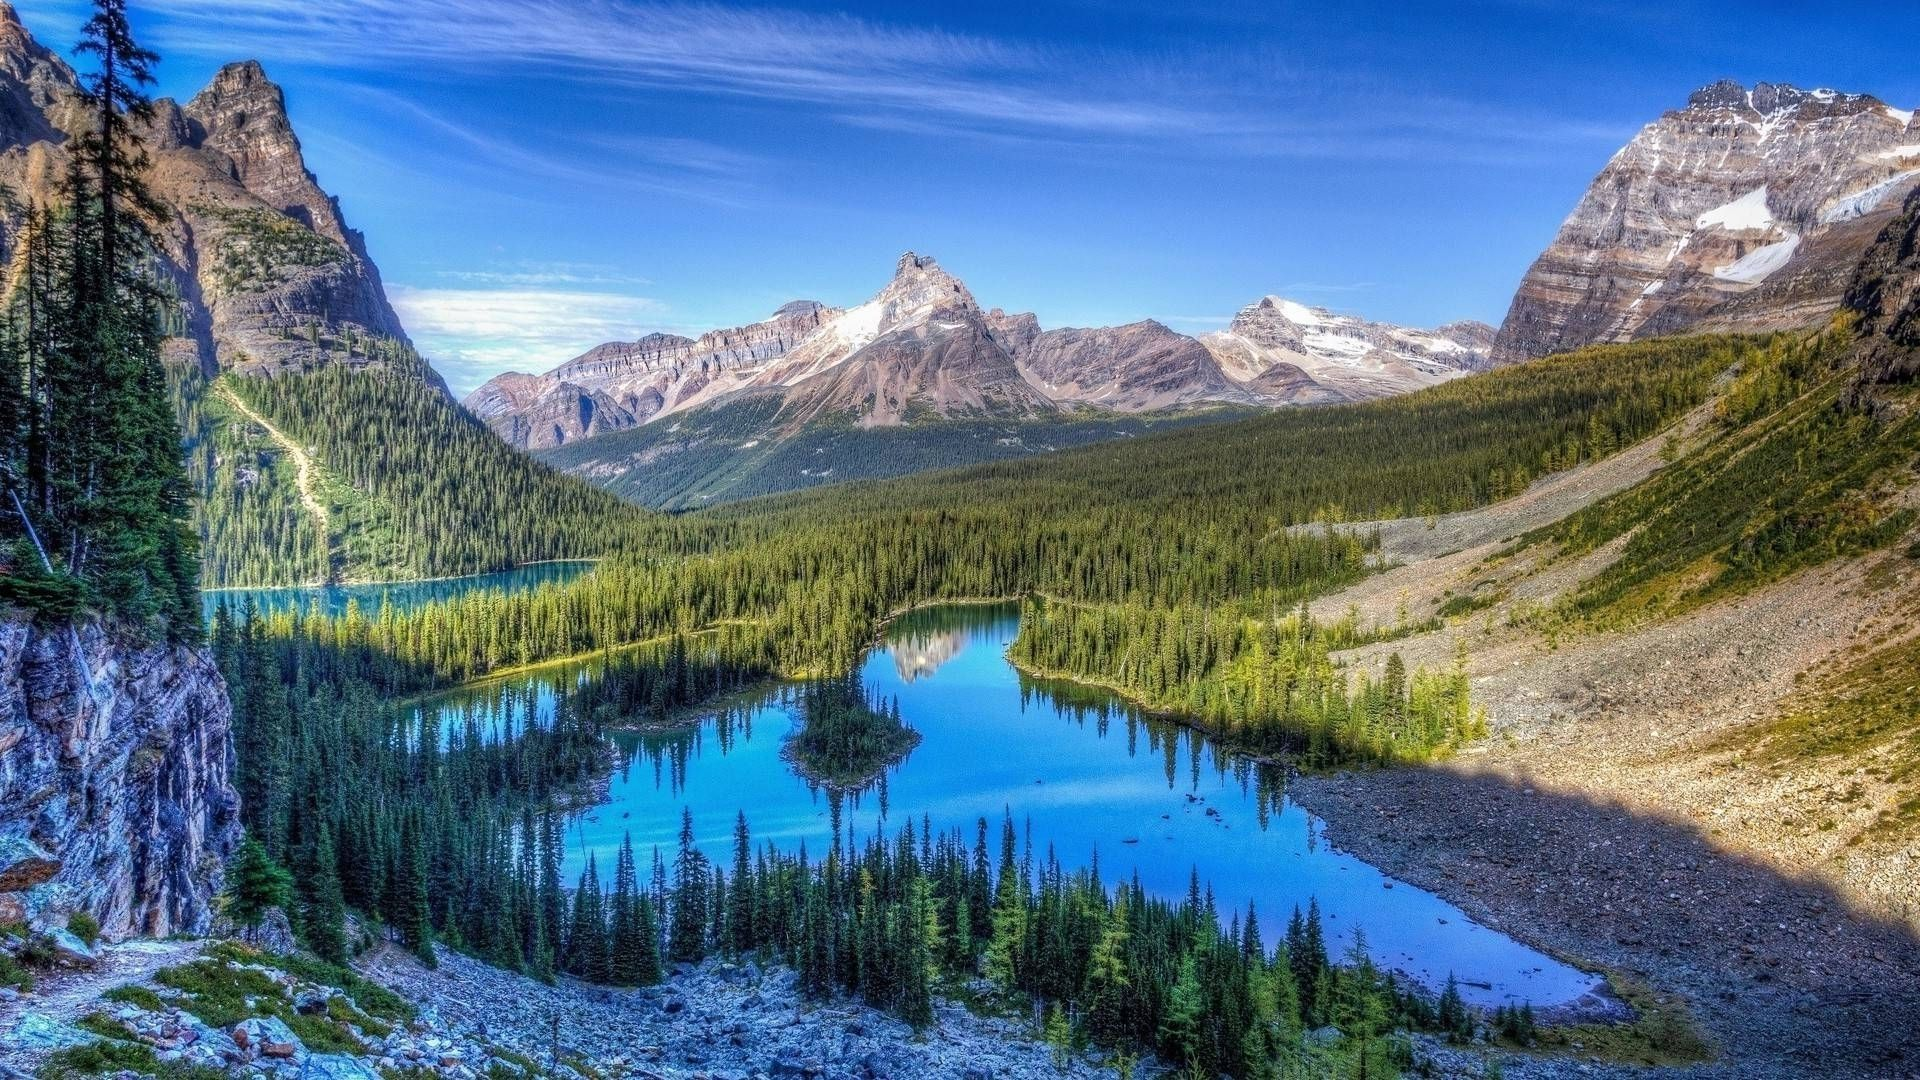 10 New Rocky Mountain National Park Wallpaper Full Hd 1080p For Pc